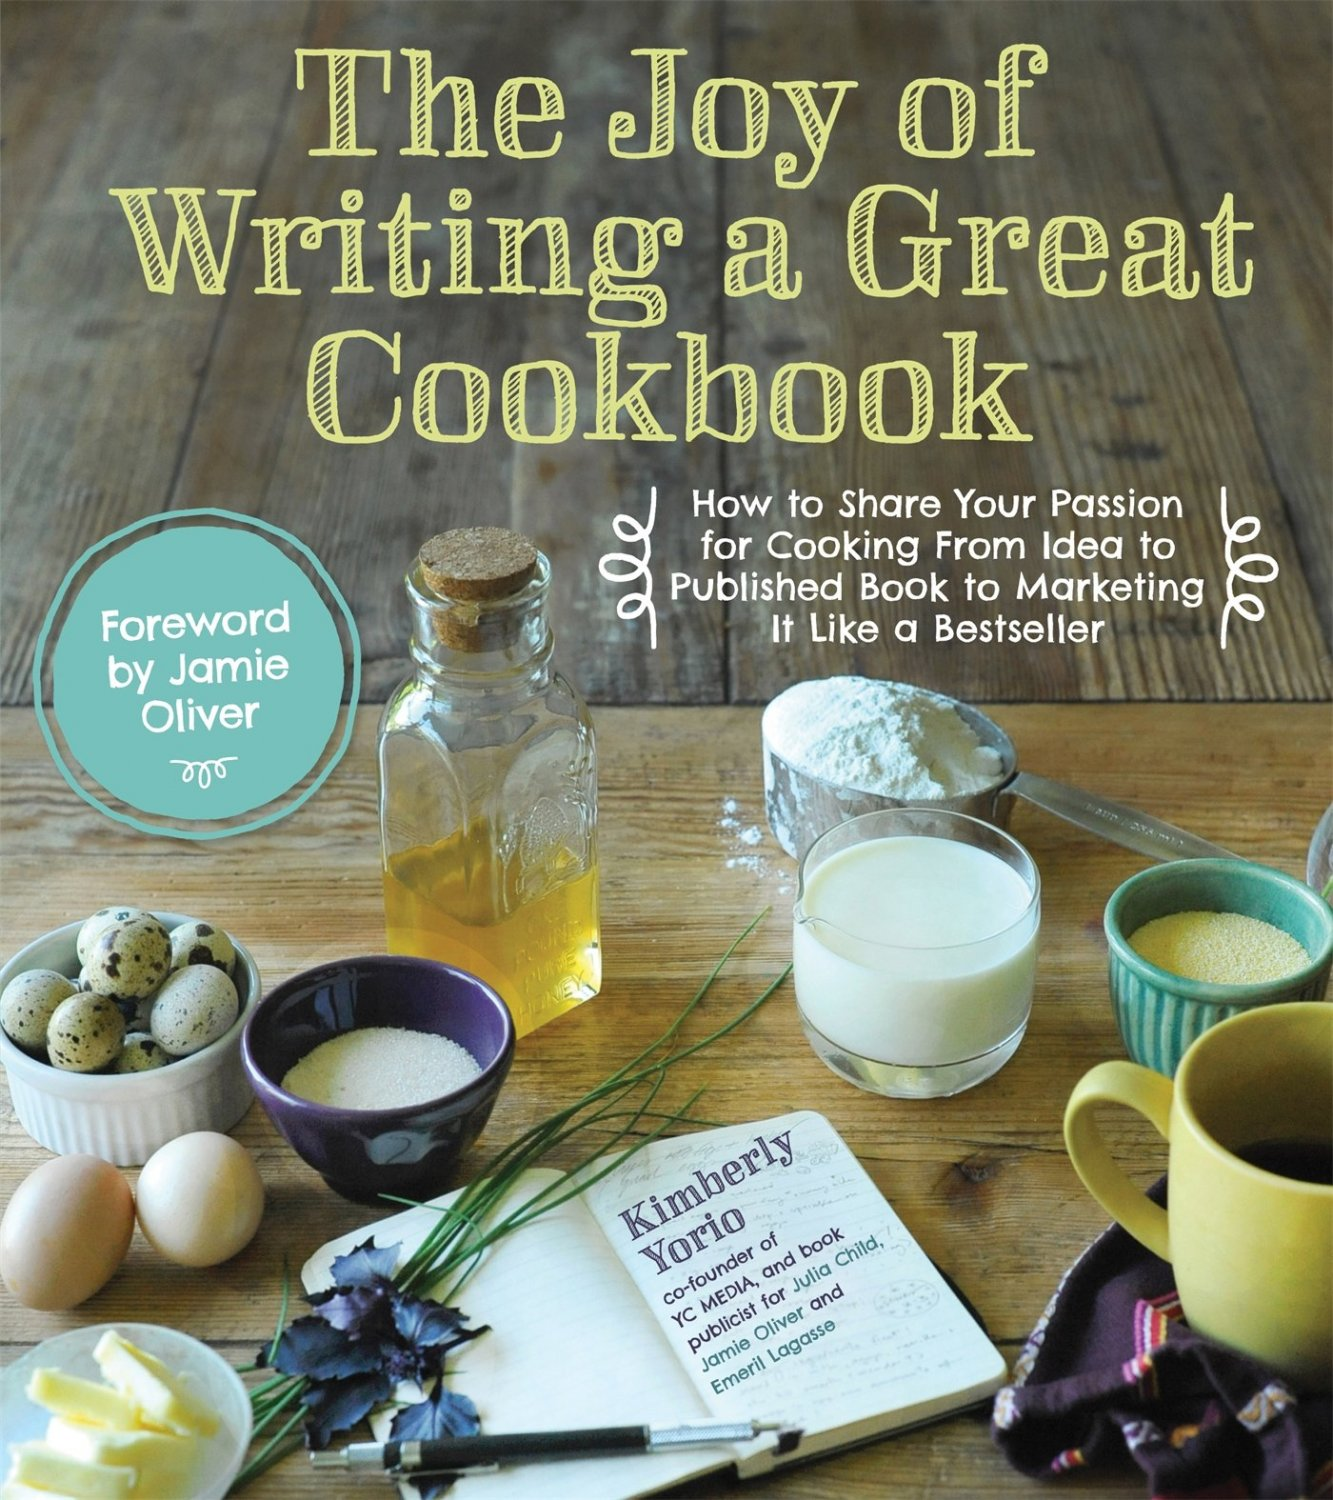 The Joy of Writing a Great Cookbook